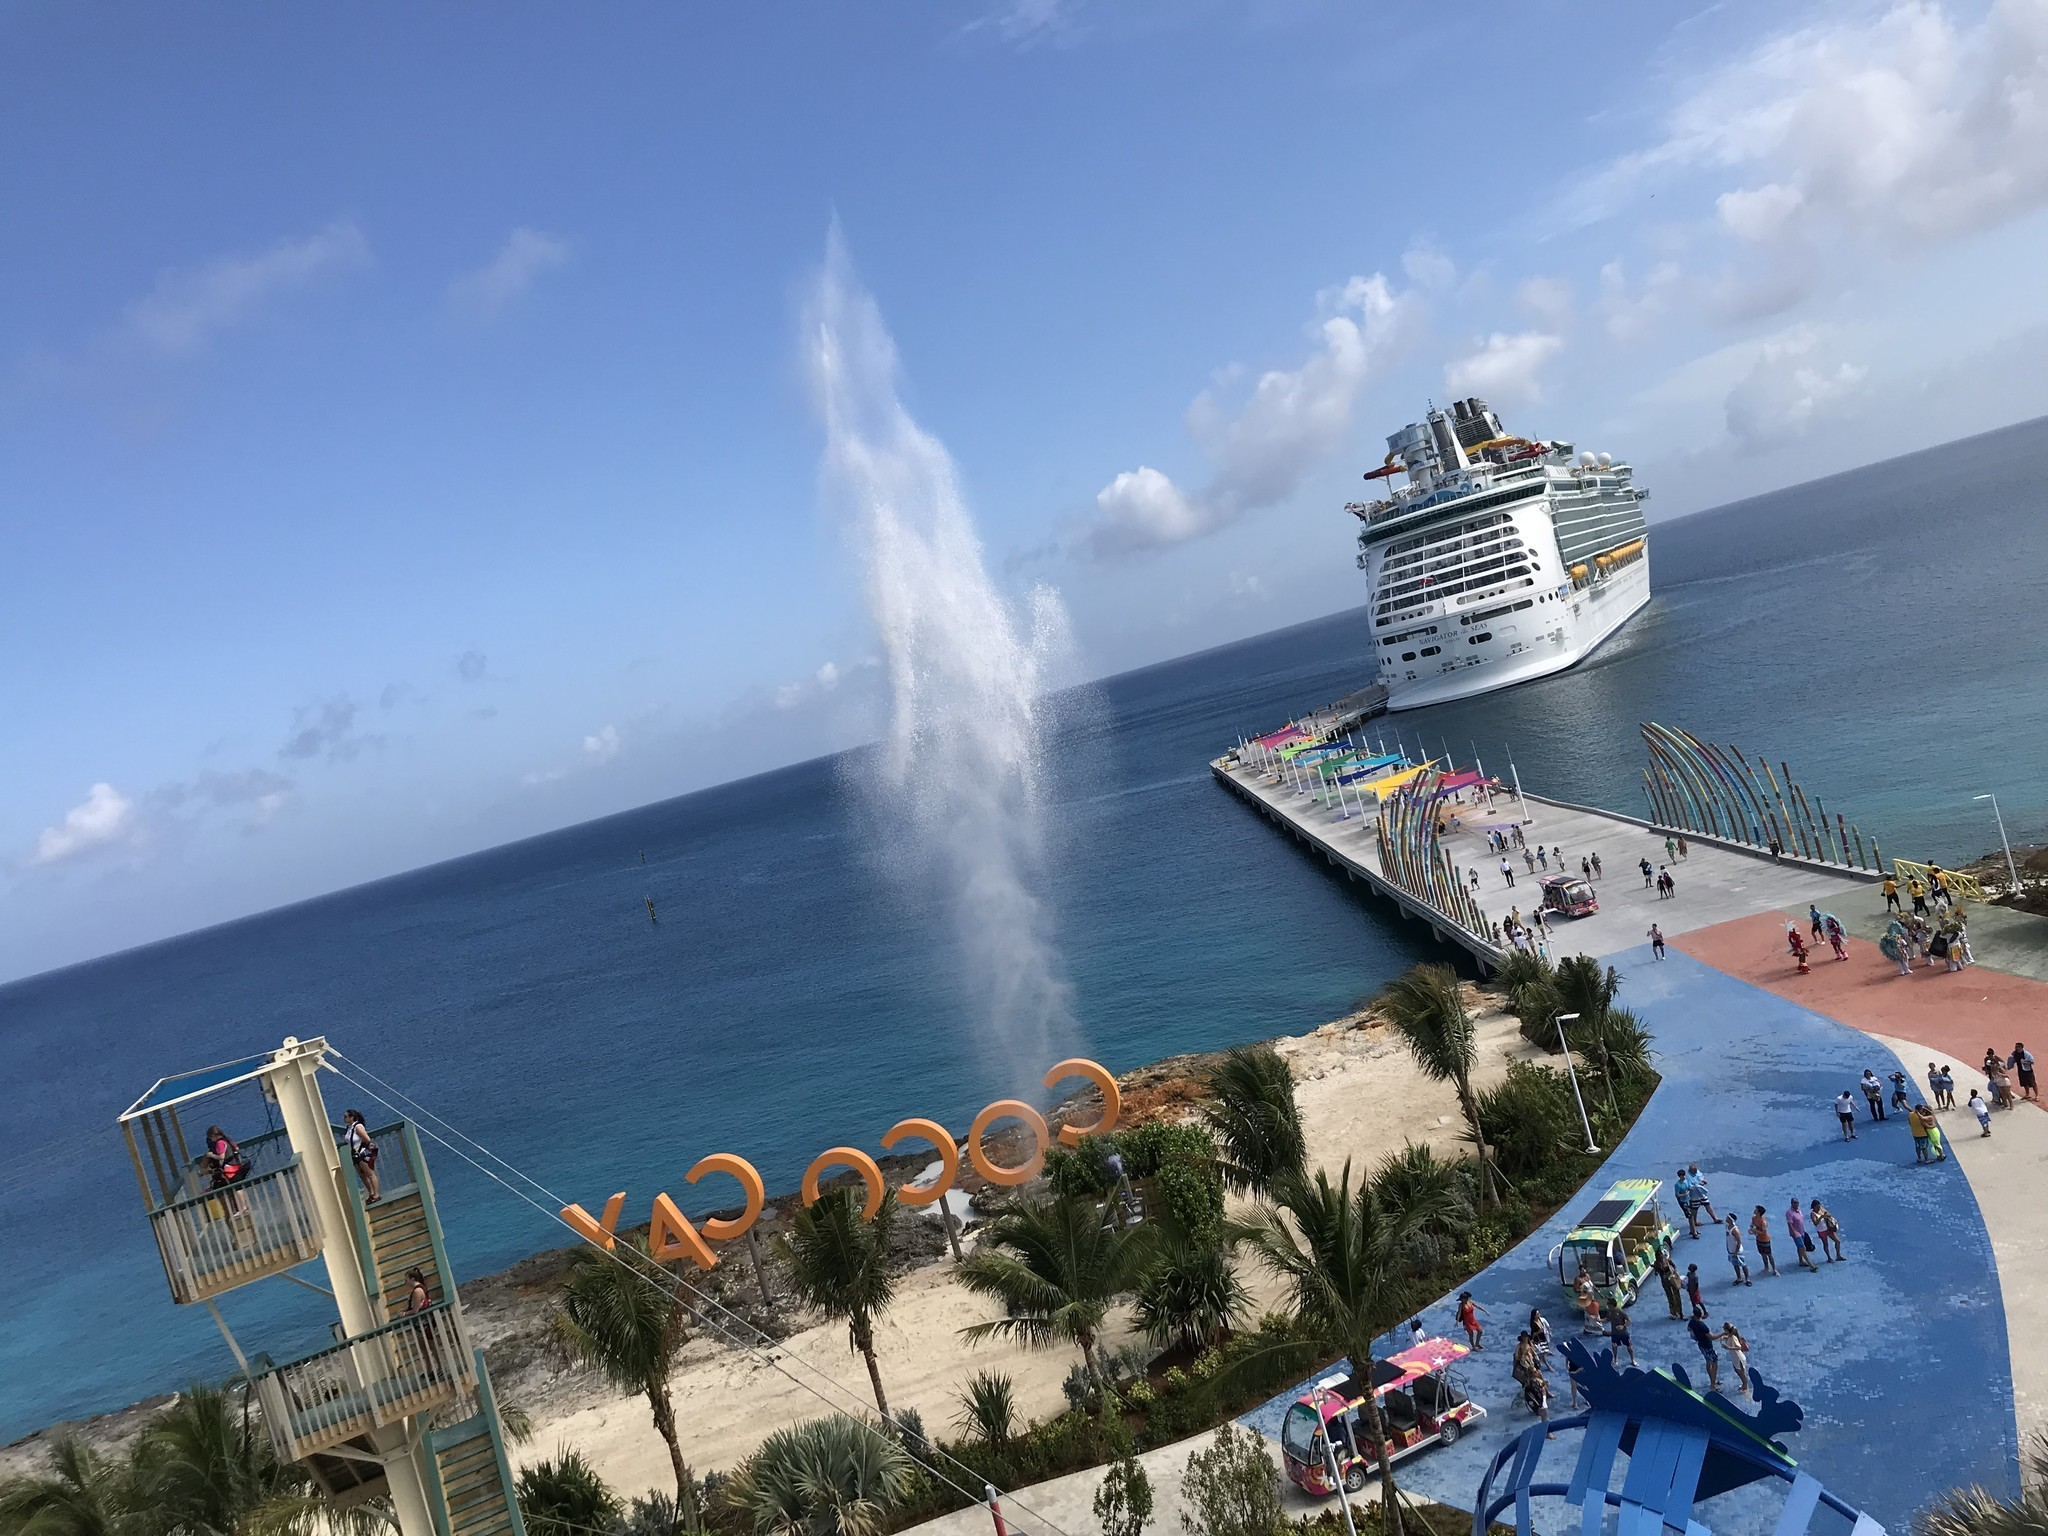 CocoCay, Royal Caribbean's private island, getting $200 million